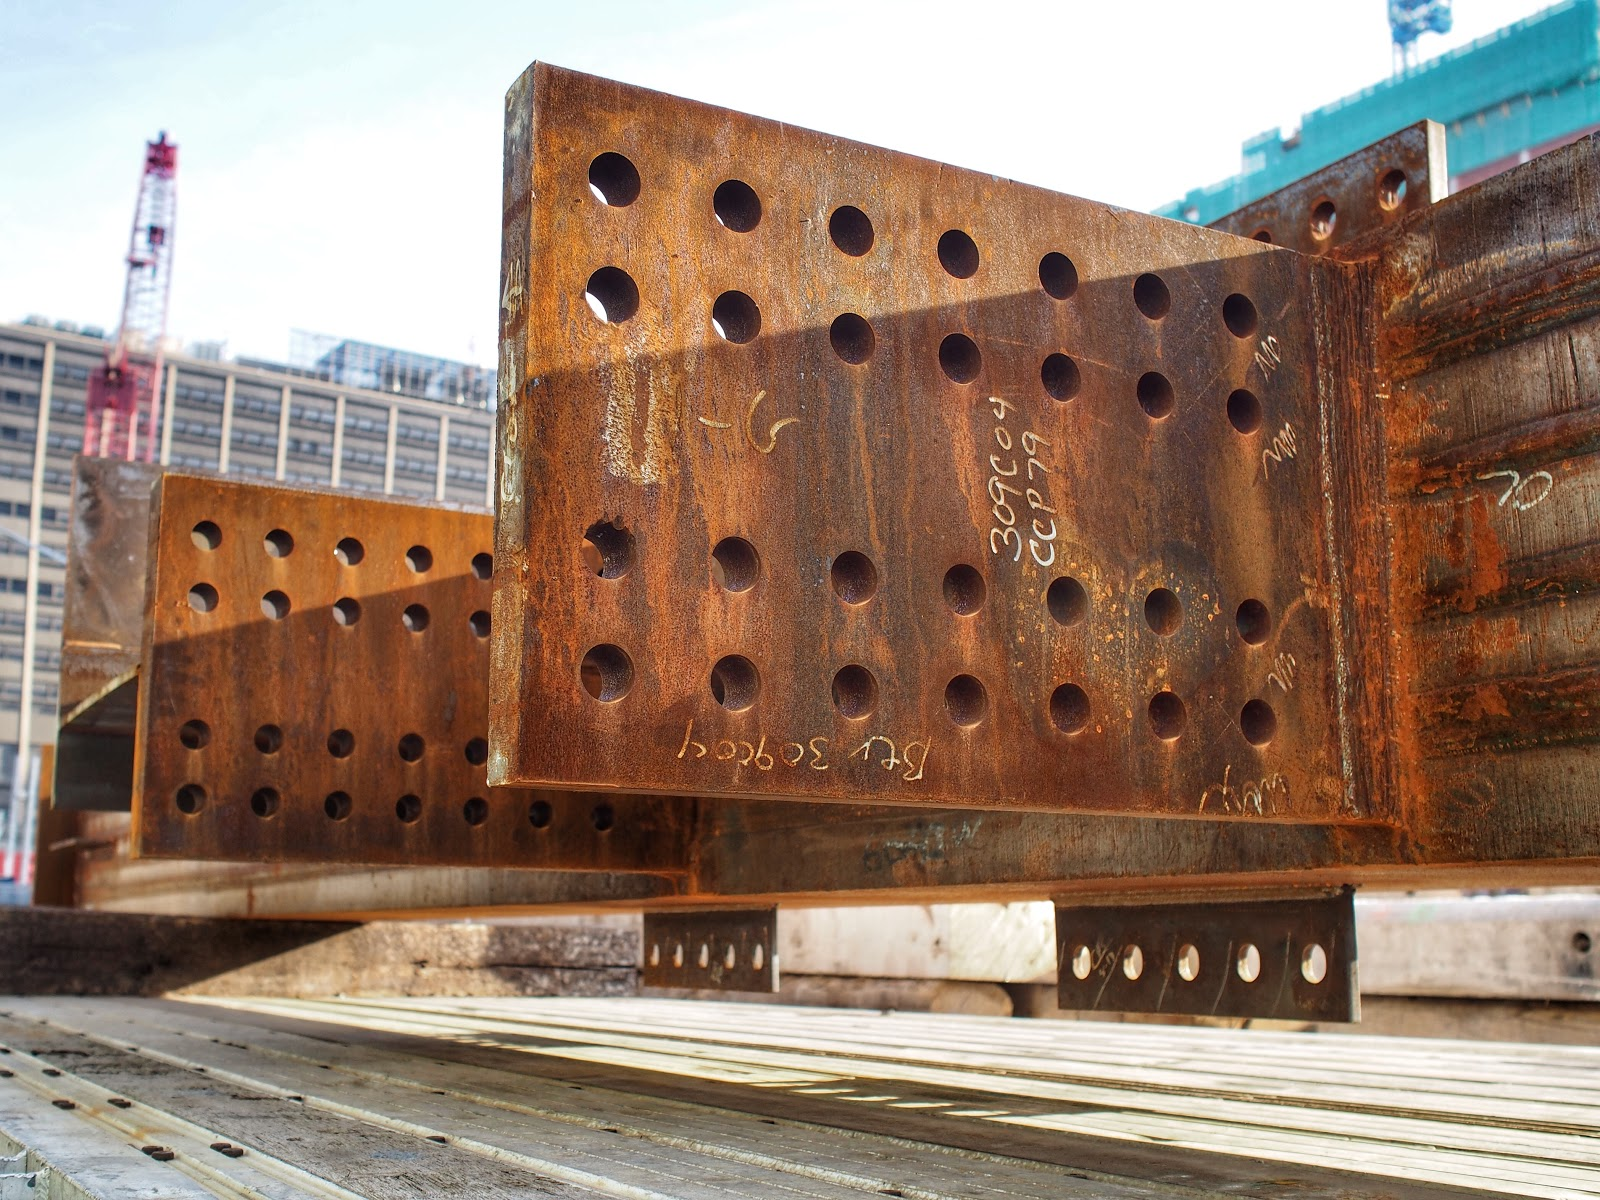 Rusted Angles #rustedangles  #construction #nyc #hudsonyards #steelplates #nails ©2014 Nancy Lundebjerg